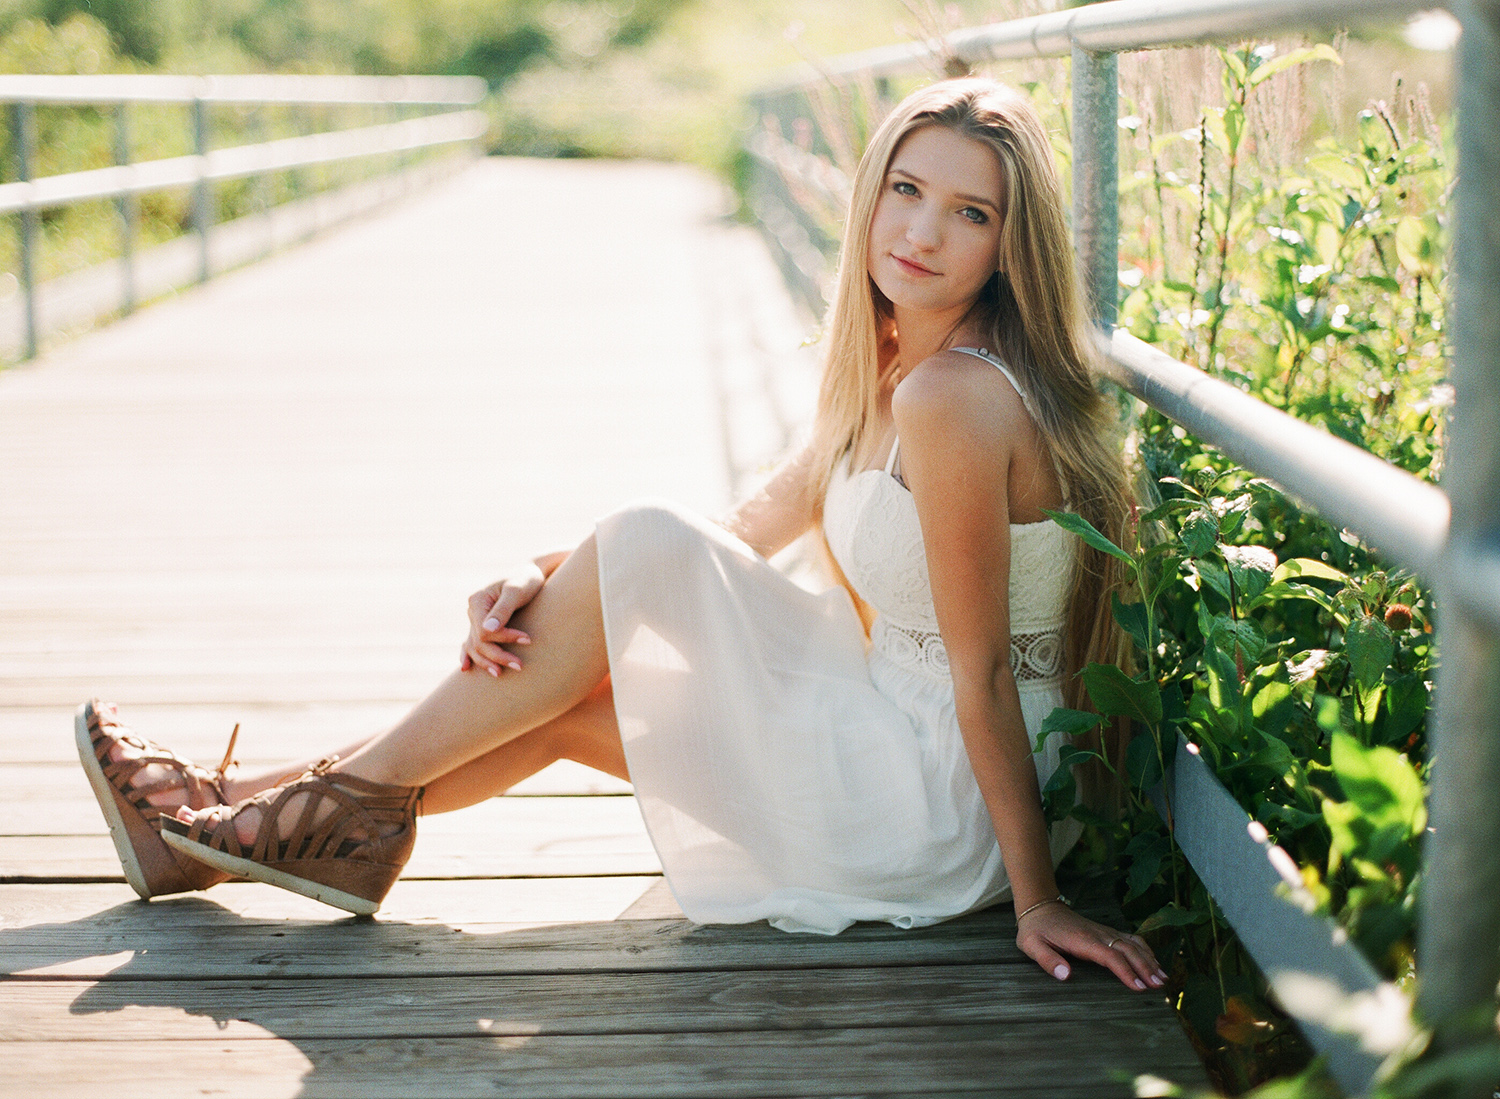 High school senior portraits in nature in michigan